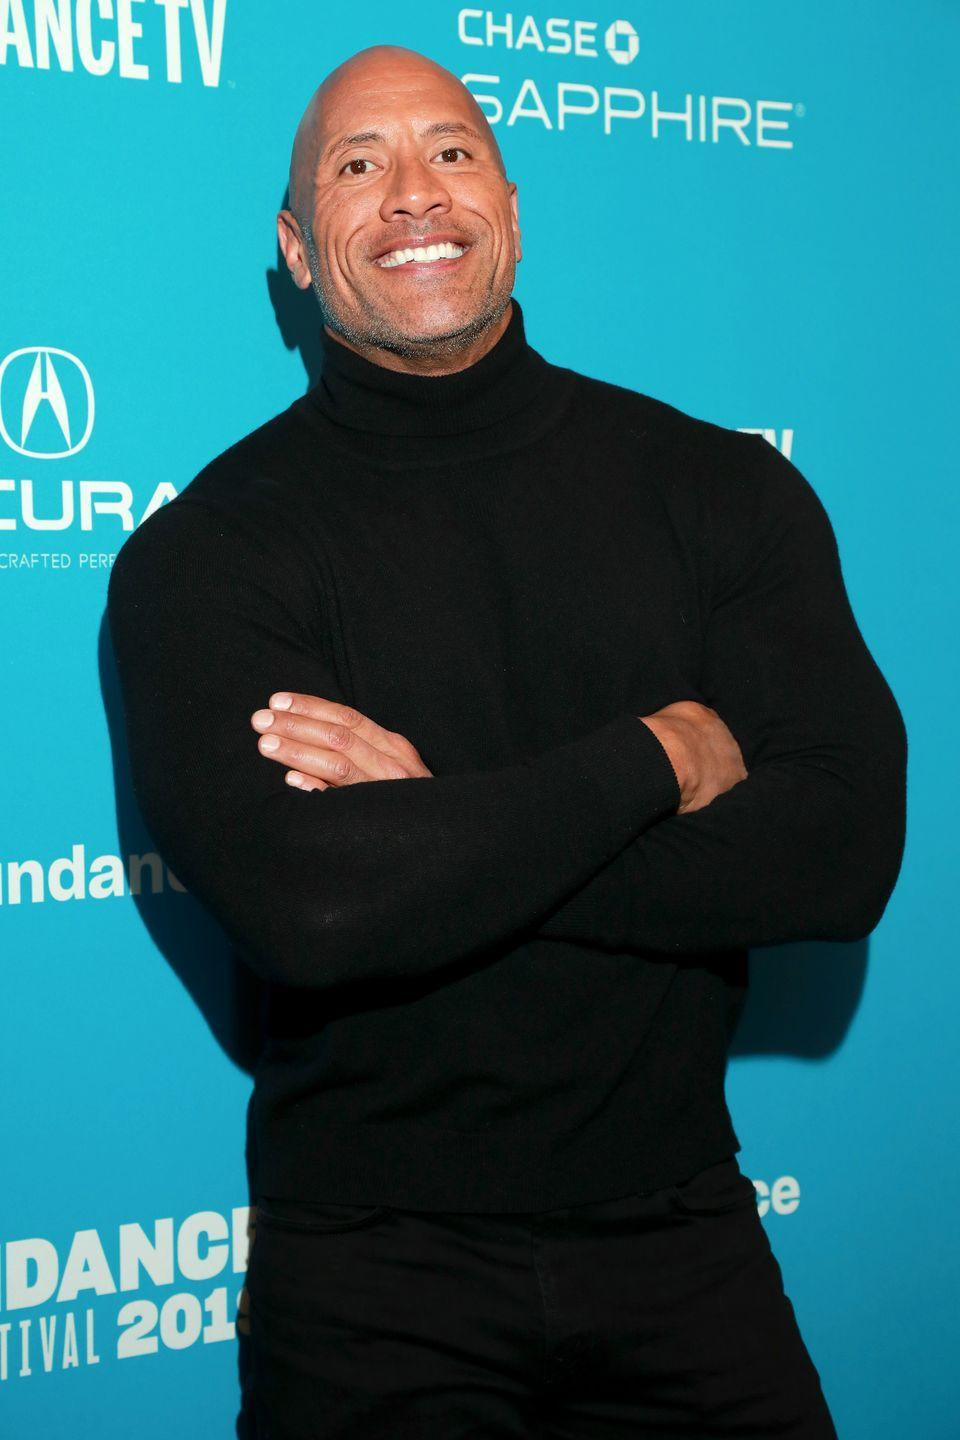 """<p>The actor <a href=""""https://www.today.com/health/dwayne-rock-johnson-shares-inspiring-message-people-depression-t56586"""" rel=""""nofollow noopener"""" target=""""_blank"""" data-ylk=""""slk:opened up about some of his struggles with depression"""" class=""""link rapid-noclick-resp"""">opened up about some of his struggles with depression</a> in a video created for the Oprah Winfrey Network. In it, he credits God for seeing him through some of the darker moments in his life, and offered advice to others who may be experiencing similar struggles: """"Hold onto that fundamental quality of faith. Have faith that on the other side of your pain is something good.""""</p>"""